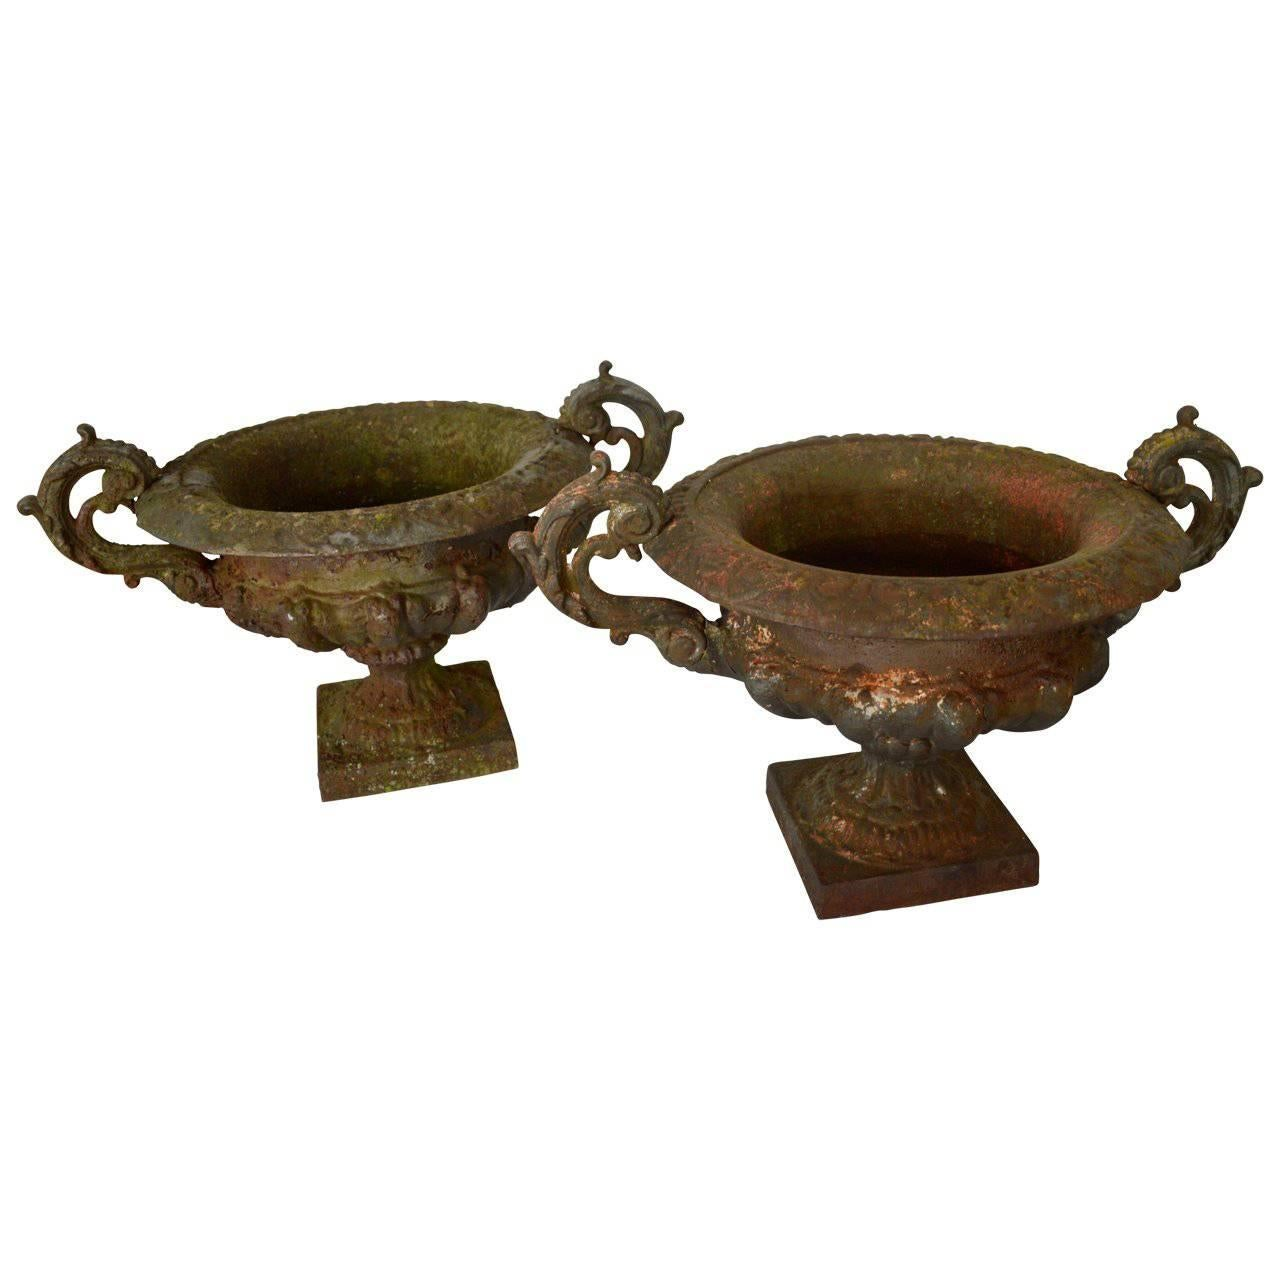 Pair of 19th Century French Cast Iron Planters or Urns